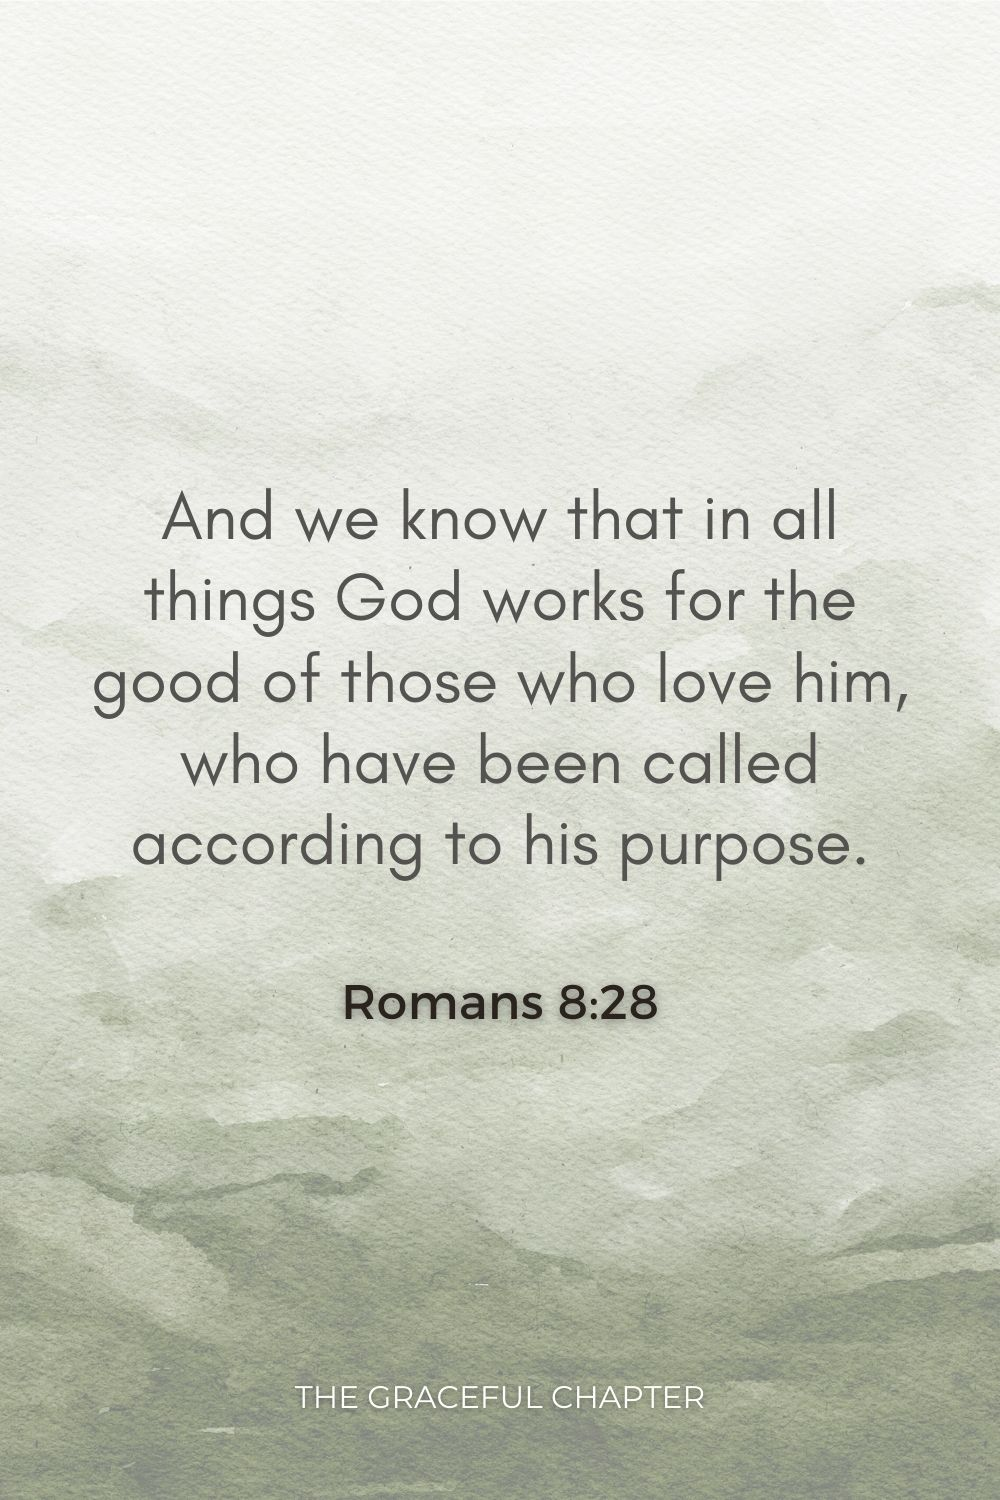 And we know that in all things God works for the good of those who love him, who have been called according to his purpose. Romans 8:28